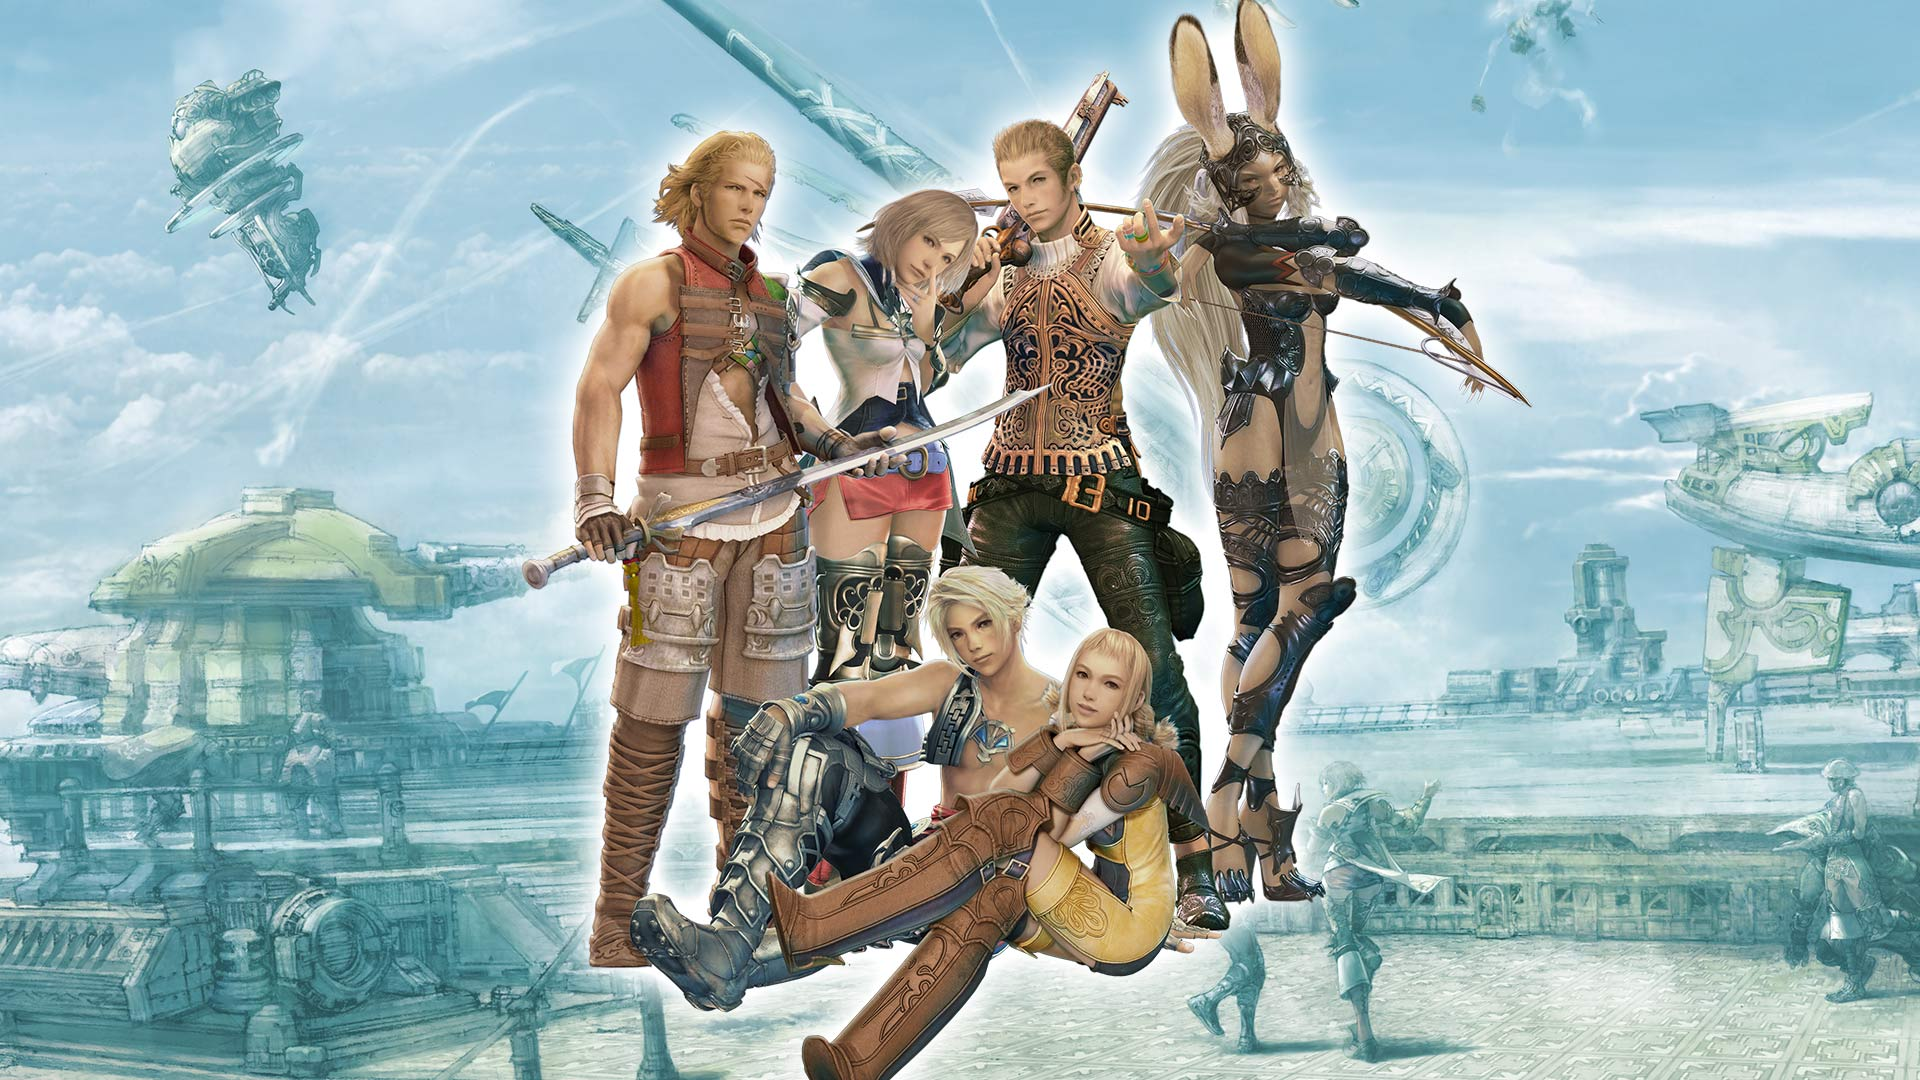 Final Fantasy Xii The Zodiac Age Wallpaper 016 Wallpapers